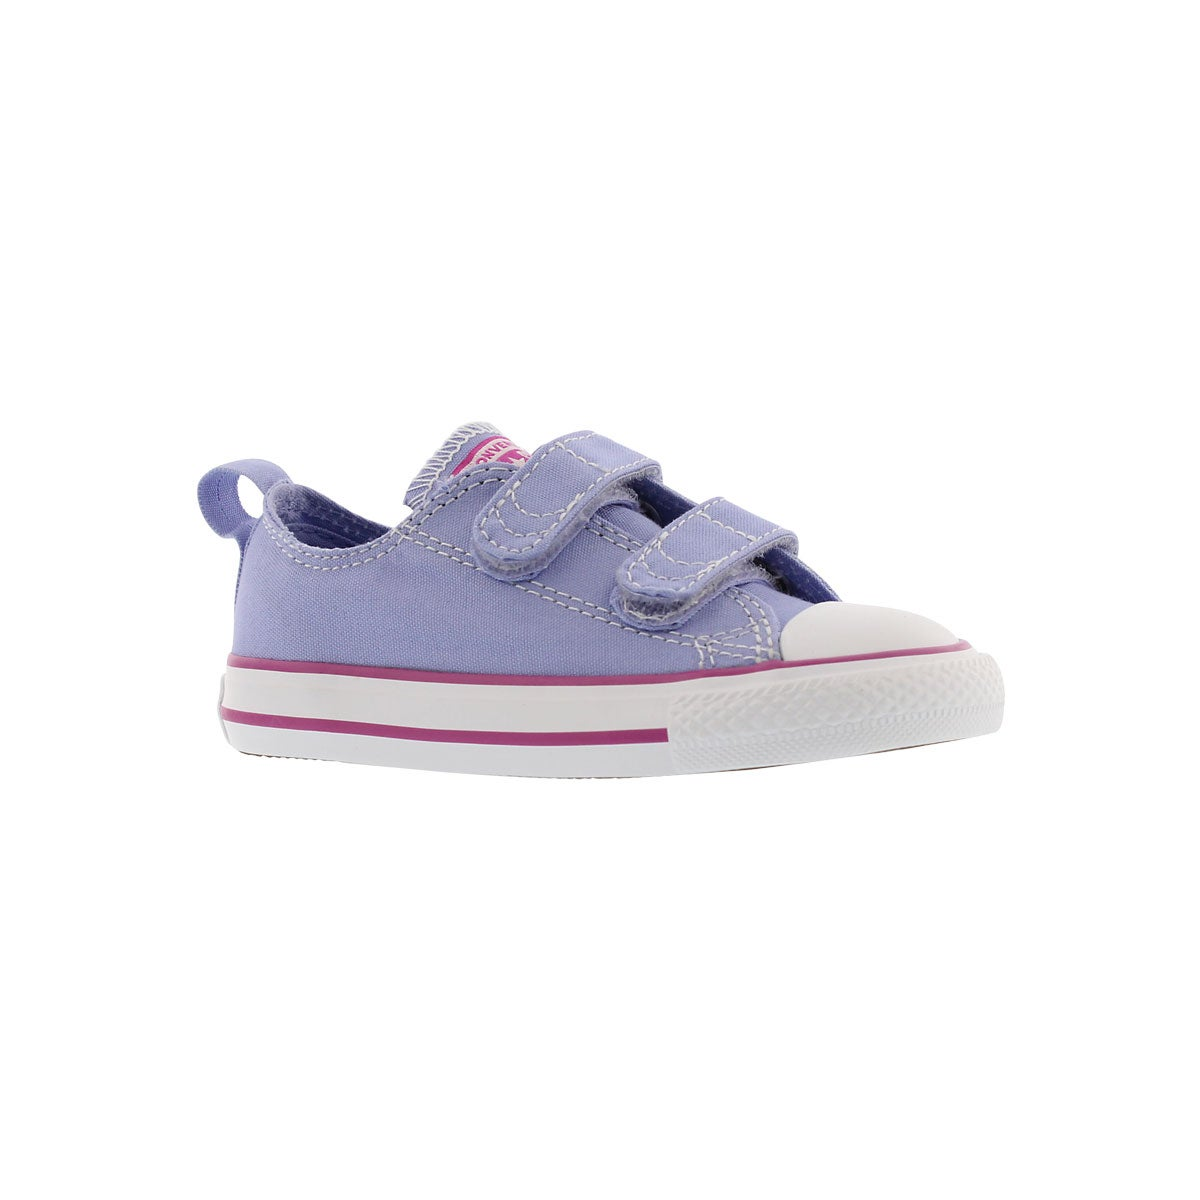 Infants' CT ALL STAR 2V twilight pulse sneakers